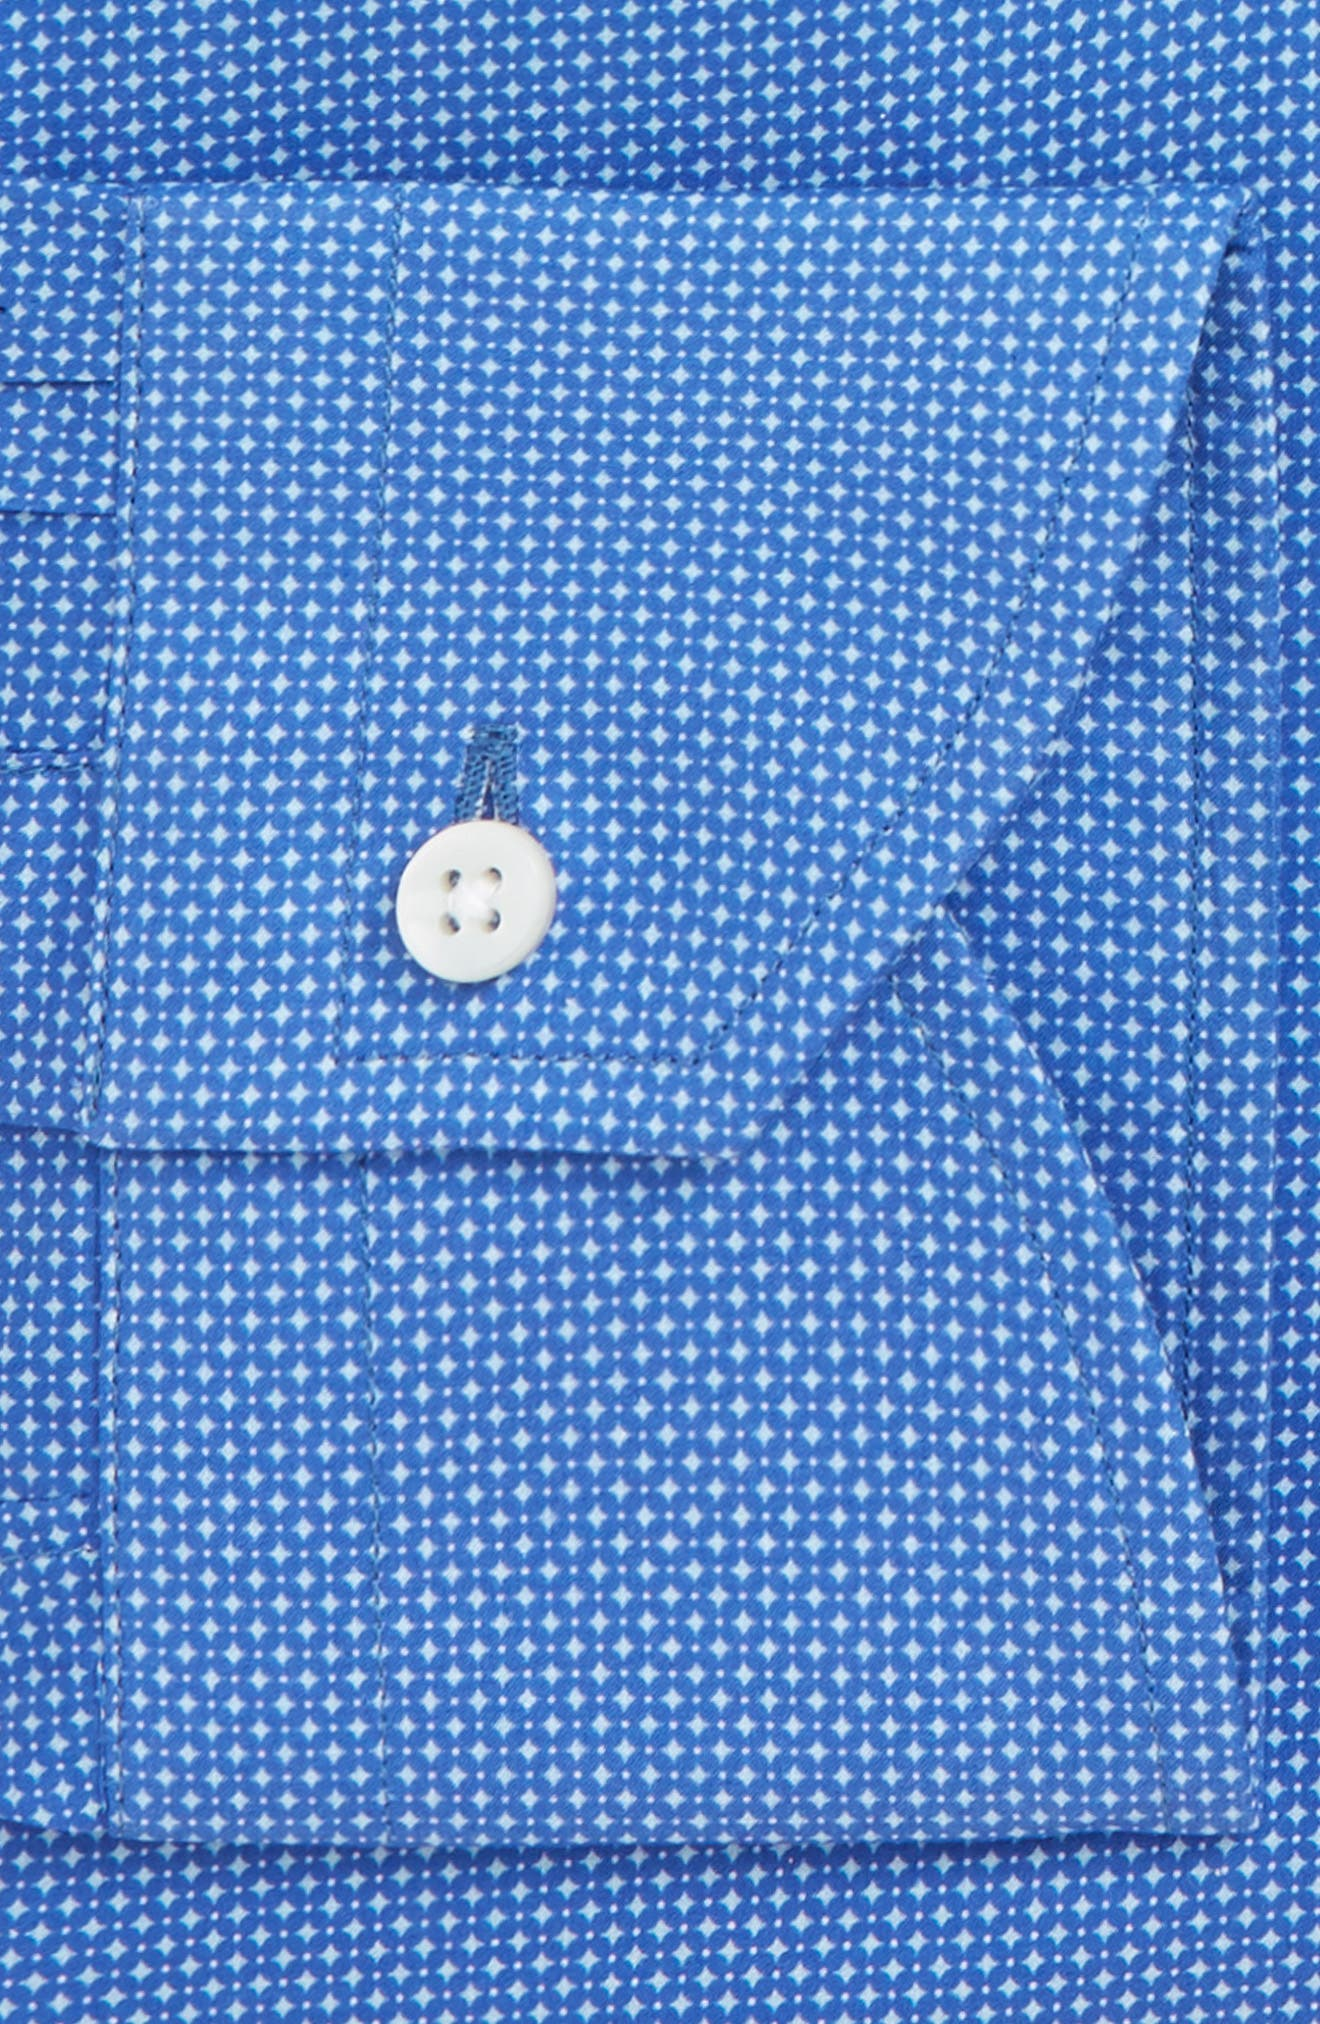 Trim Fit Dot Dress Shirt,                             Alternate thumbnail 7, color,                             430